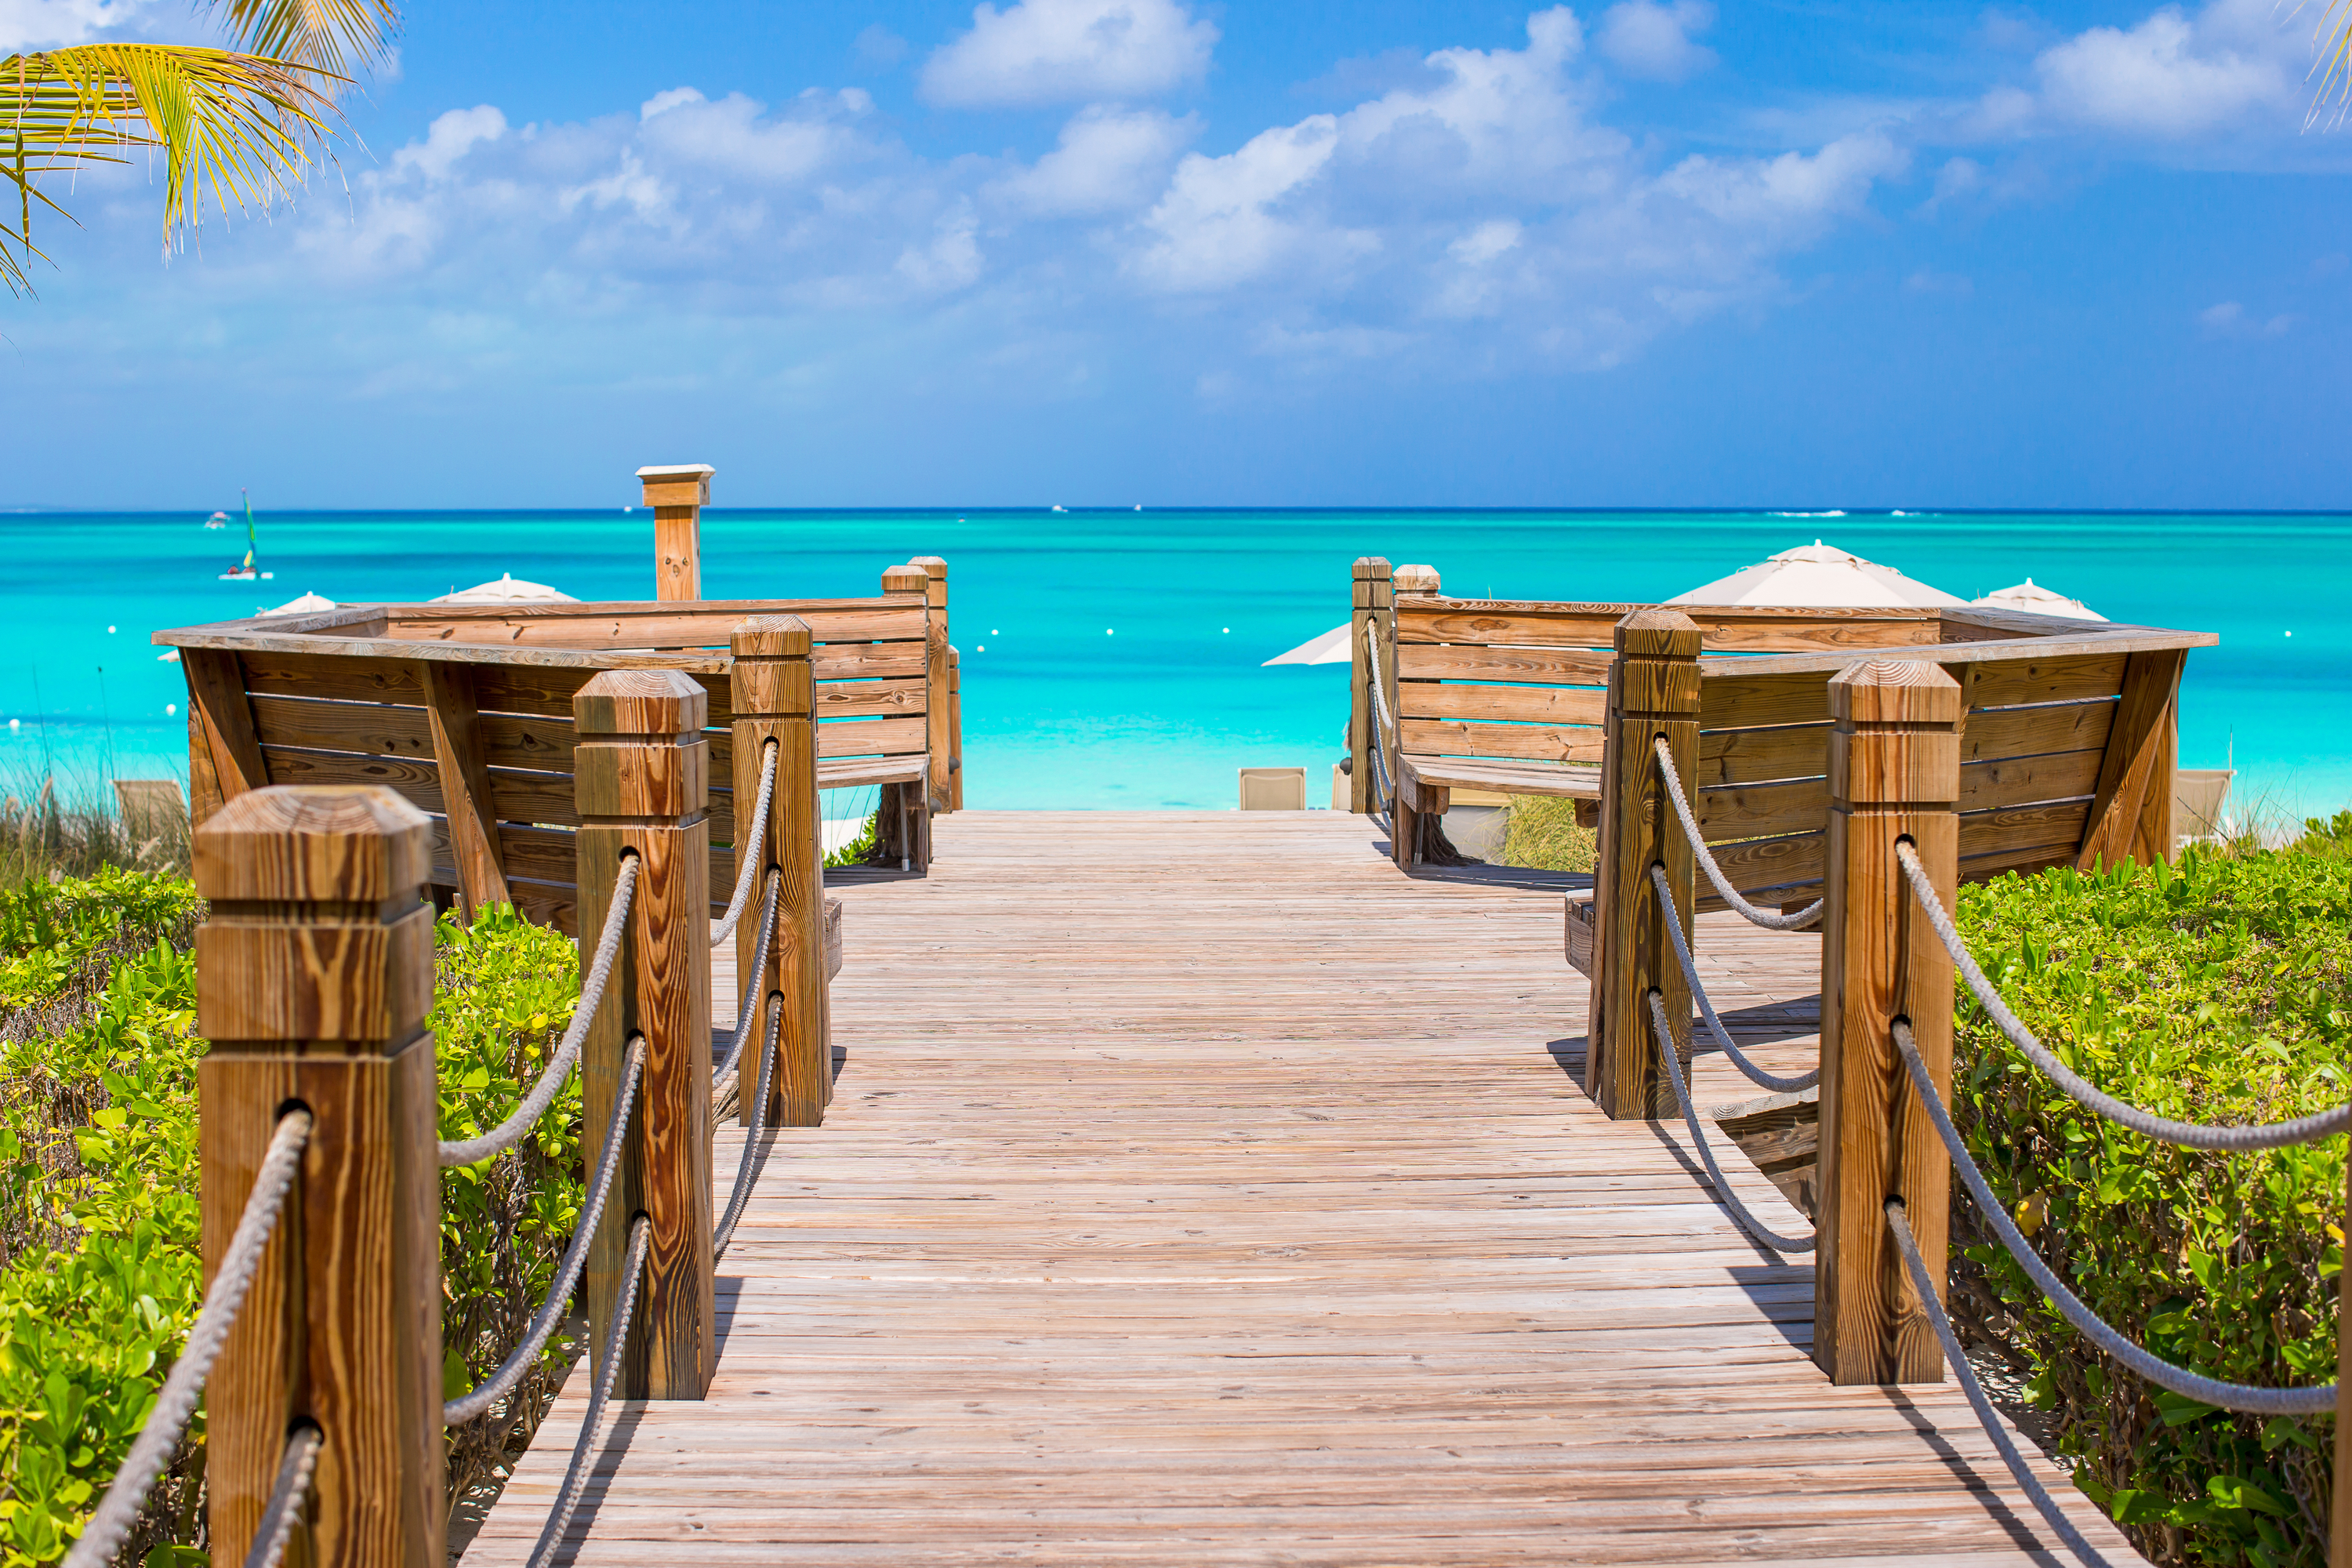 There is nothing better than a relaxing getaway to the Caribbean. Here are some beautiful Caribbean islands that are underrated but worth the visit.